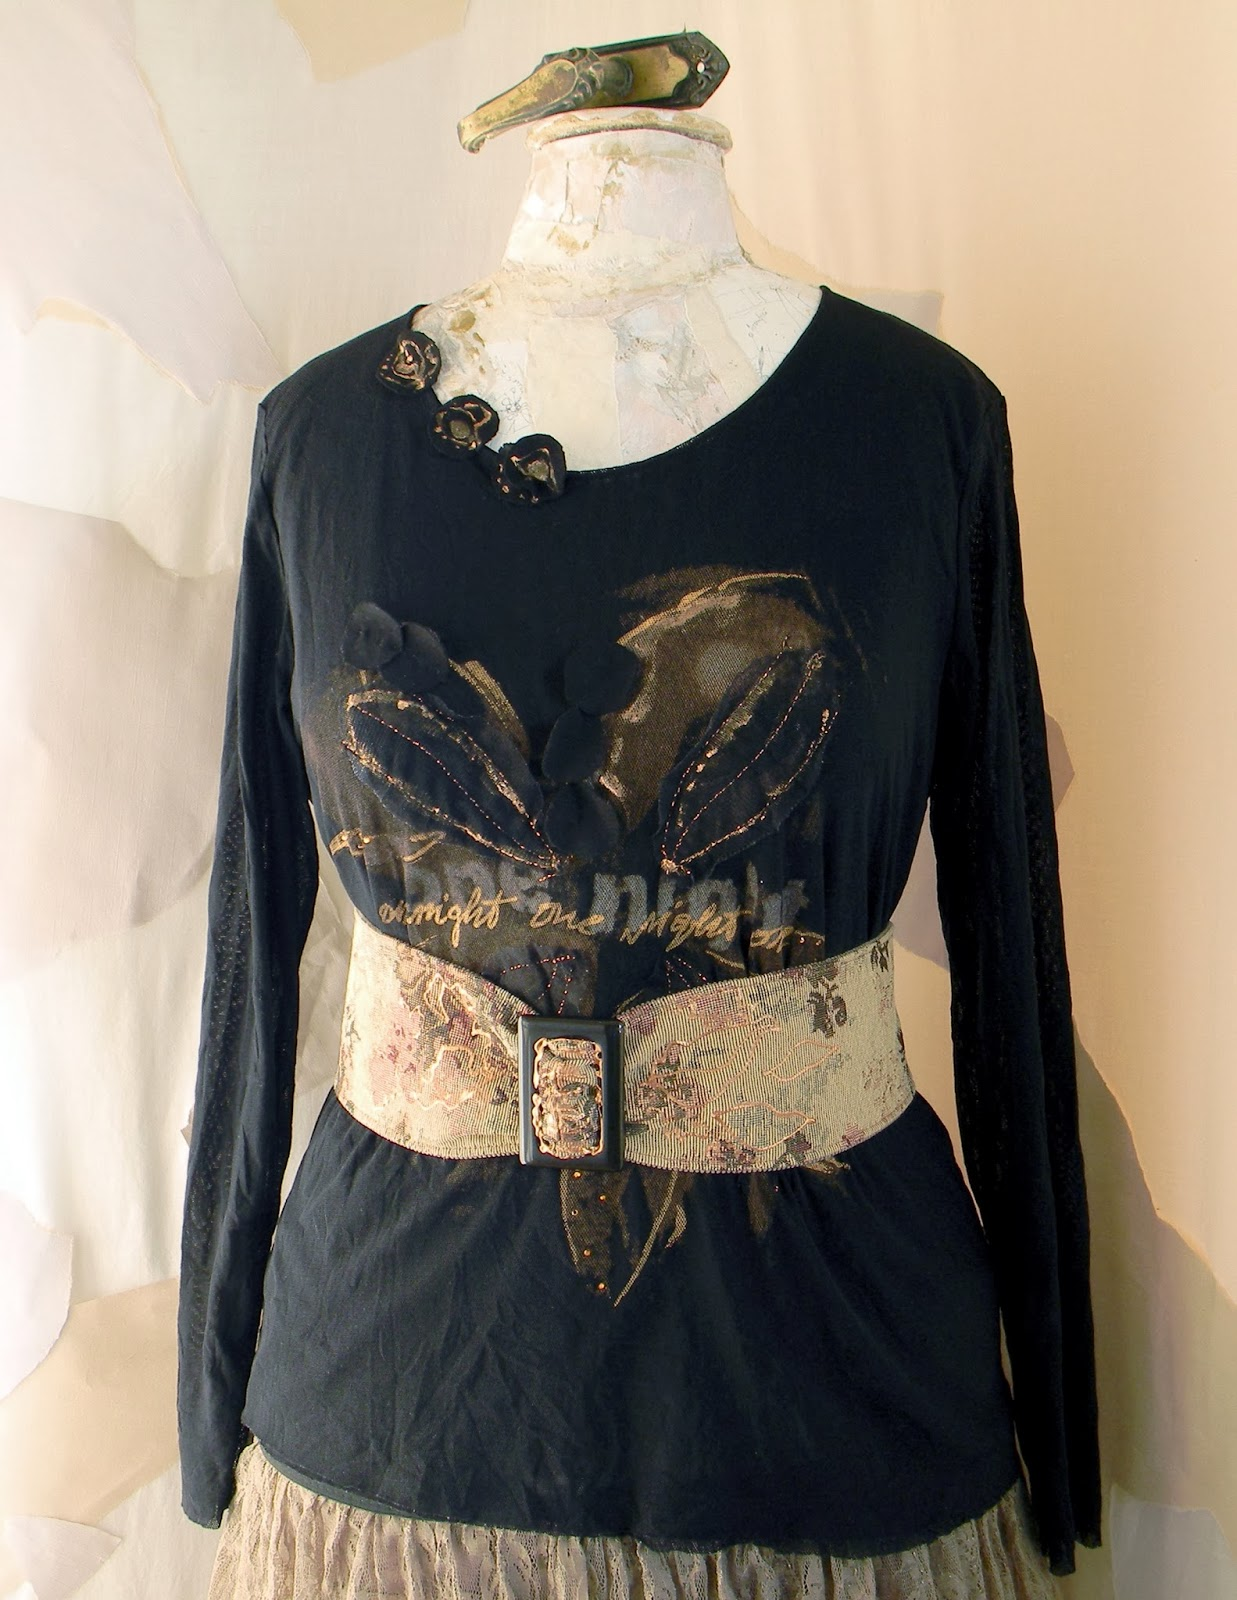 Restyled Altered Fashion Blouse with Vintage Inspired Waist Belt Black Stretch Tulle Blouse